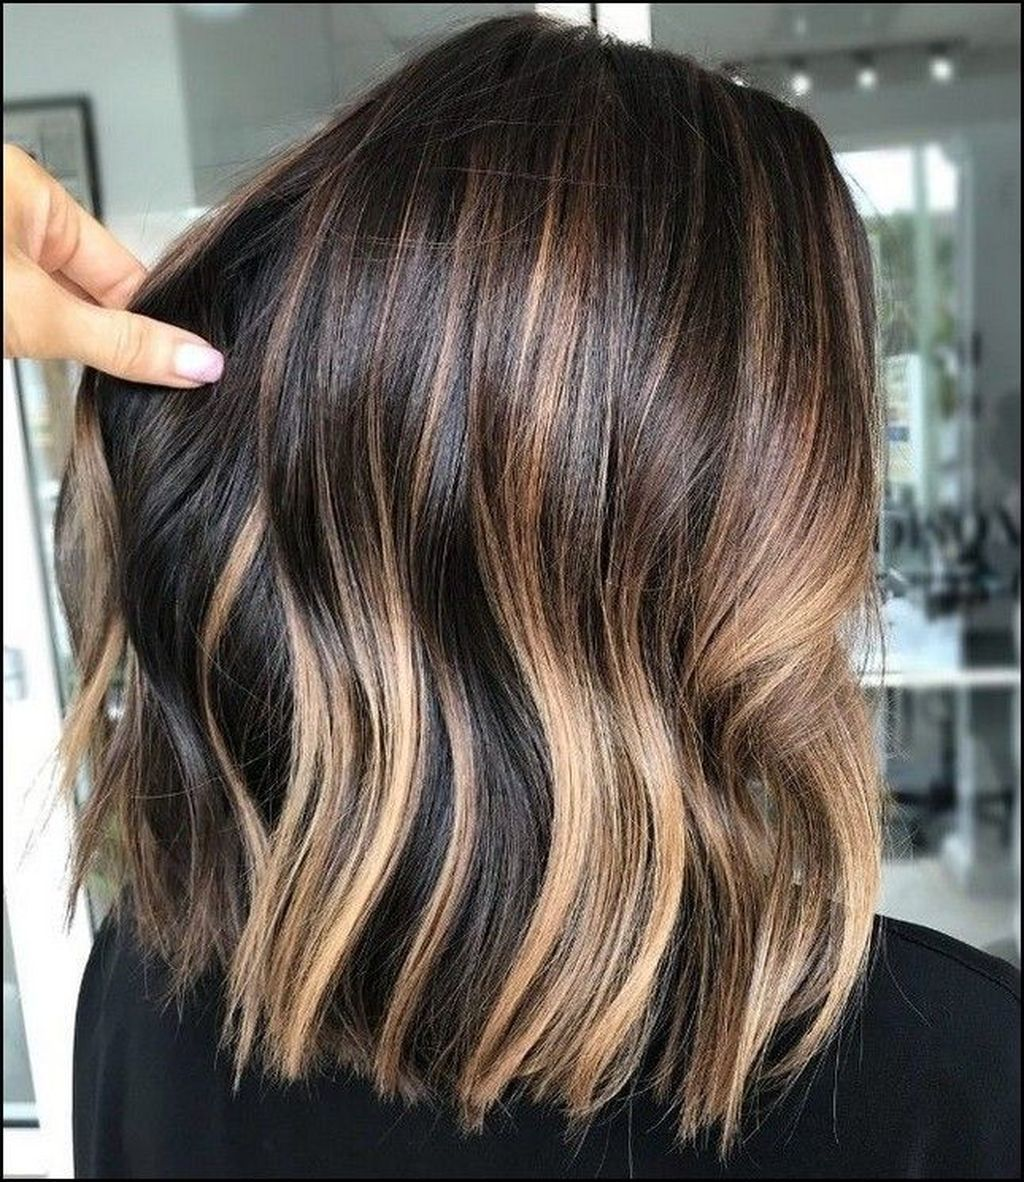 11+ Stylish Medium Ombre Hairstyles Ideas For Women This Year